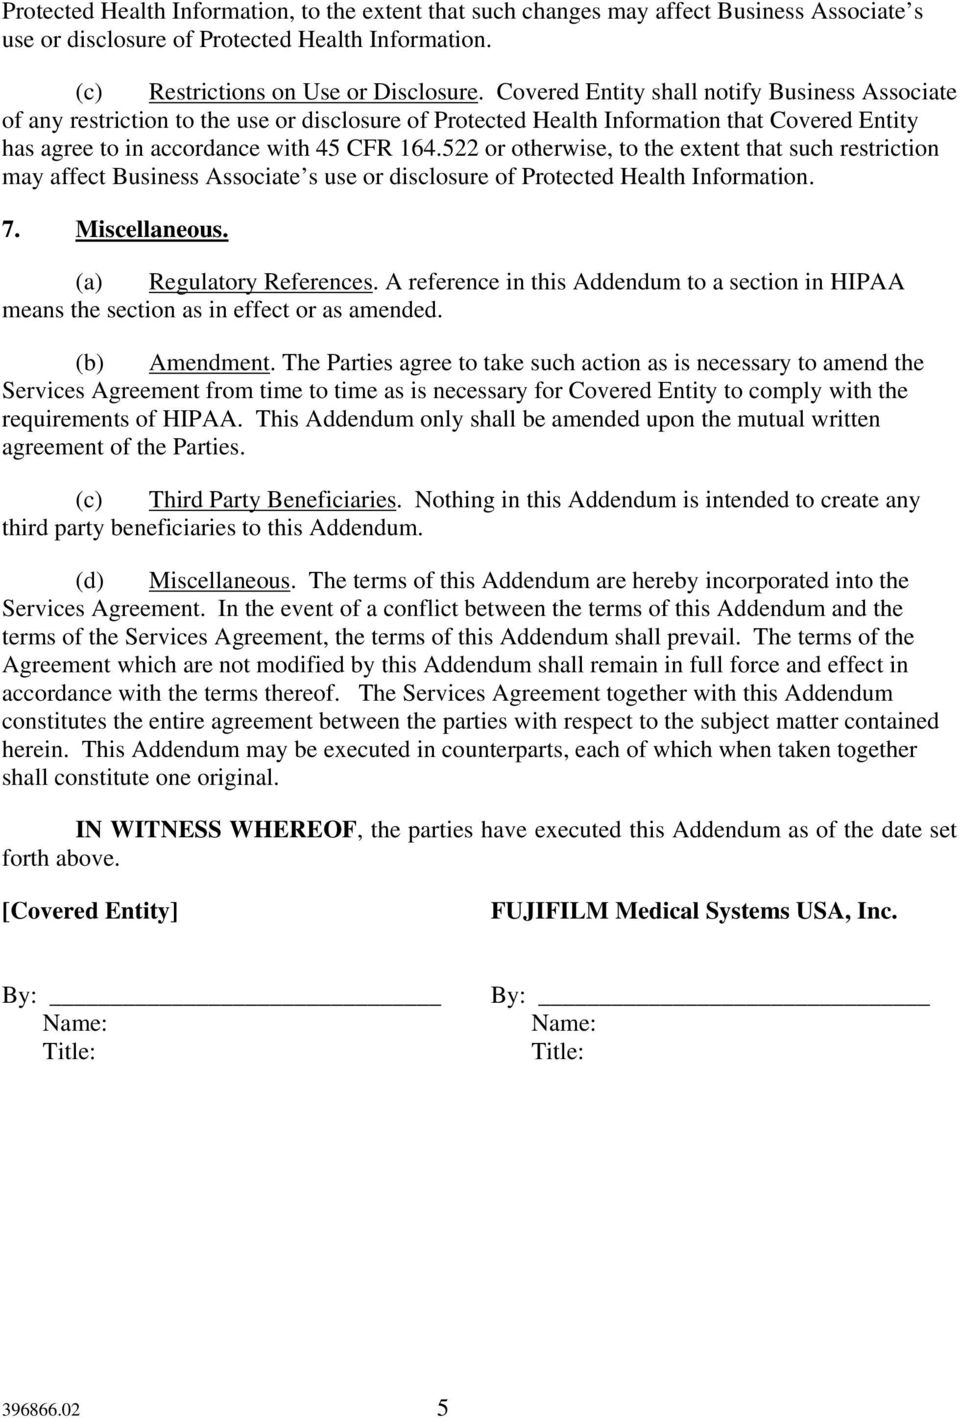 HIPAA BUSINESS ASSOCIATE ADDENDUM - PDF